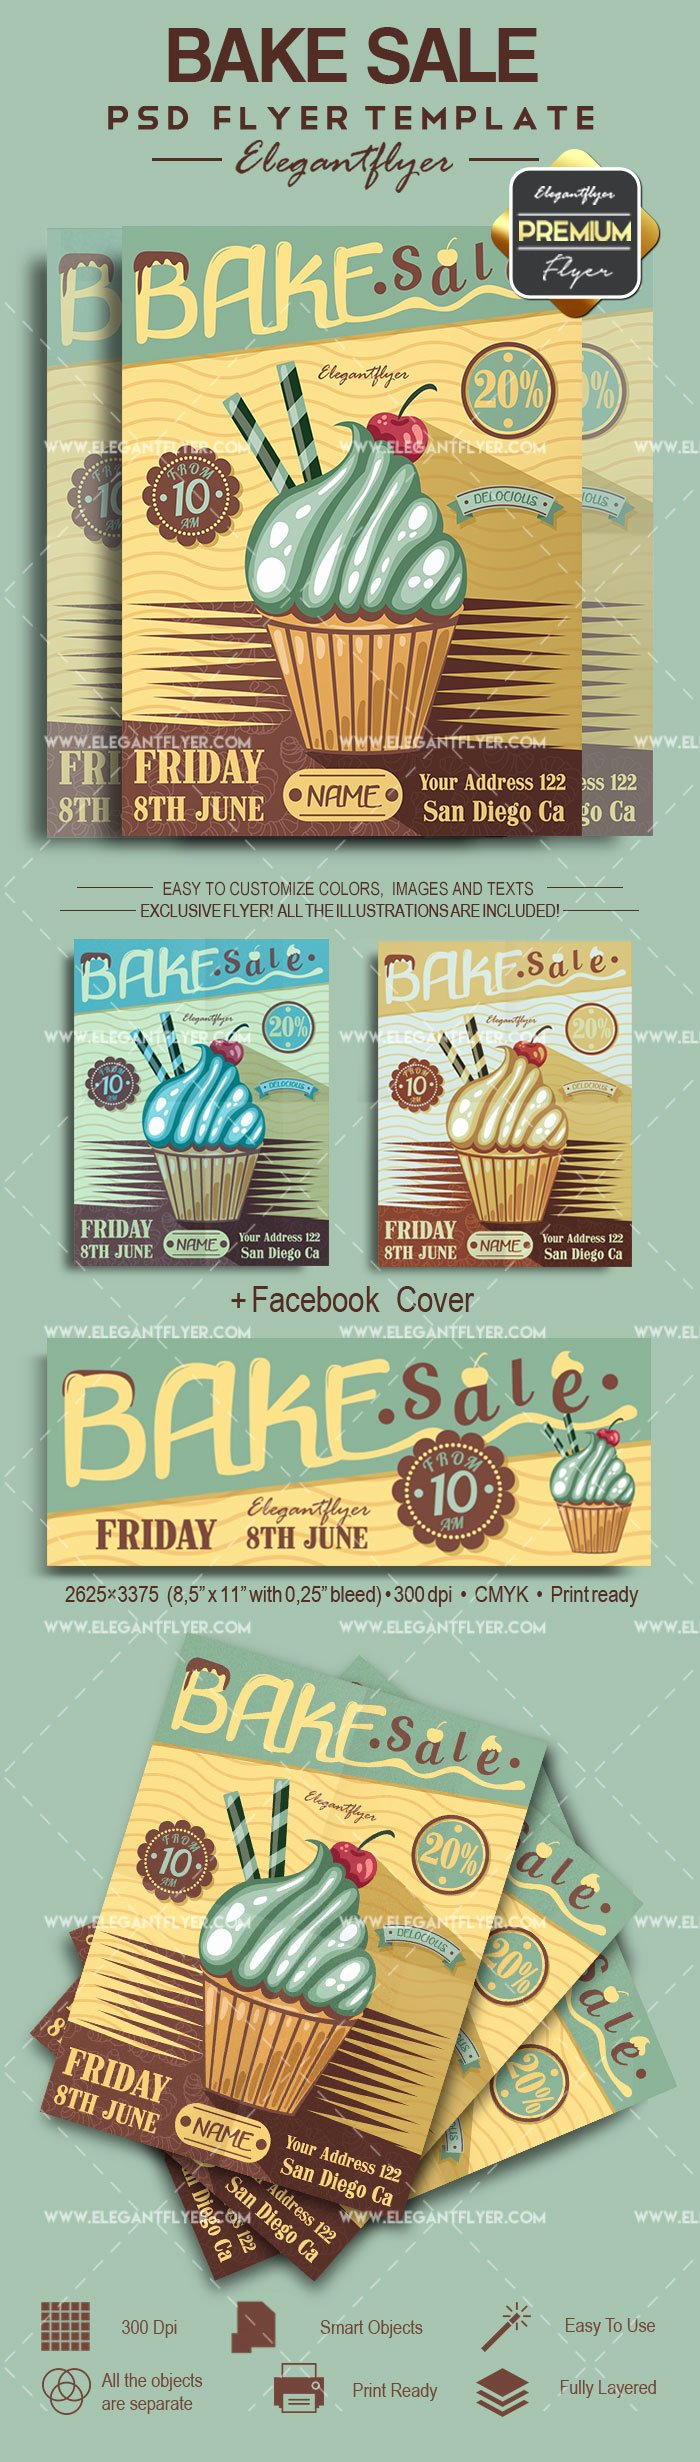 Bake Sale Flyer Template Free Beautiful Bake Sale Psd Poster – by Elegantflyer